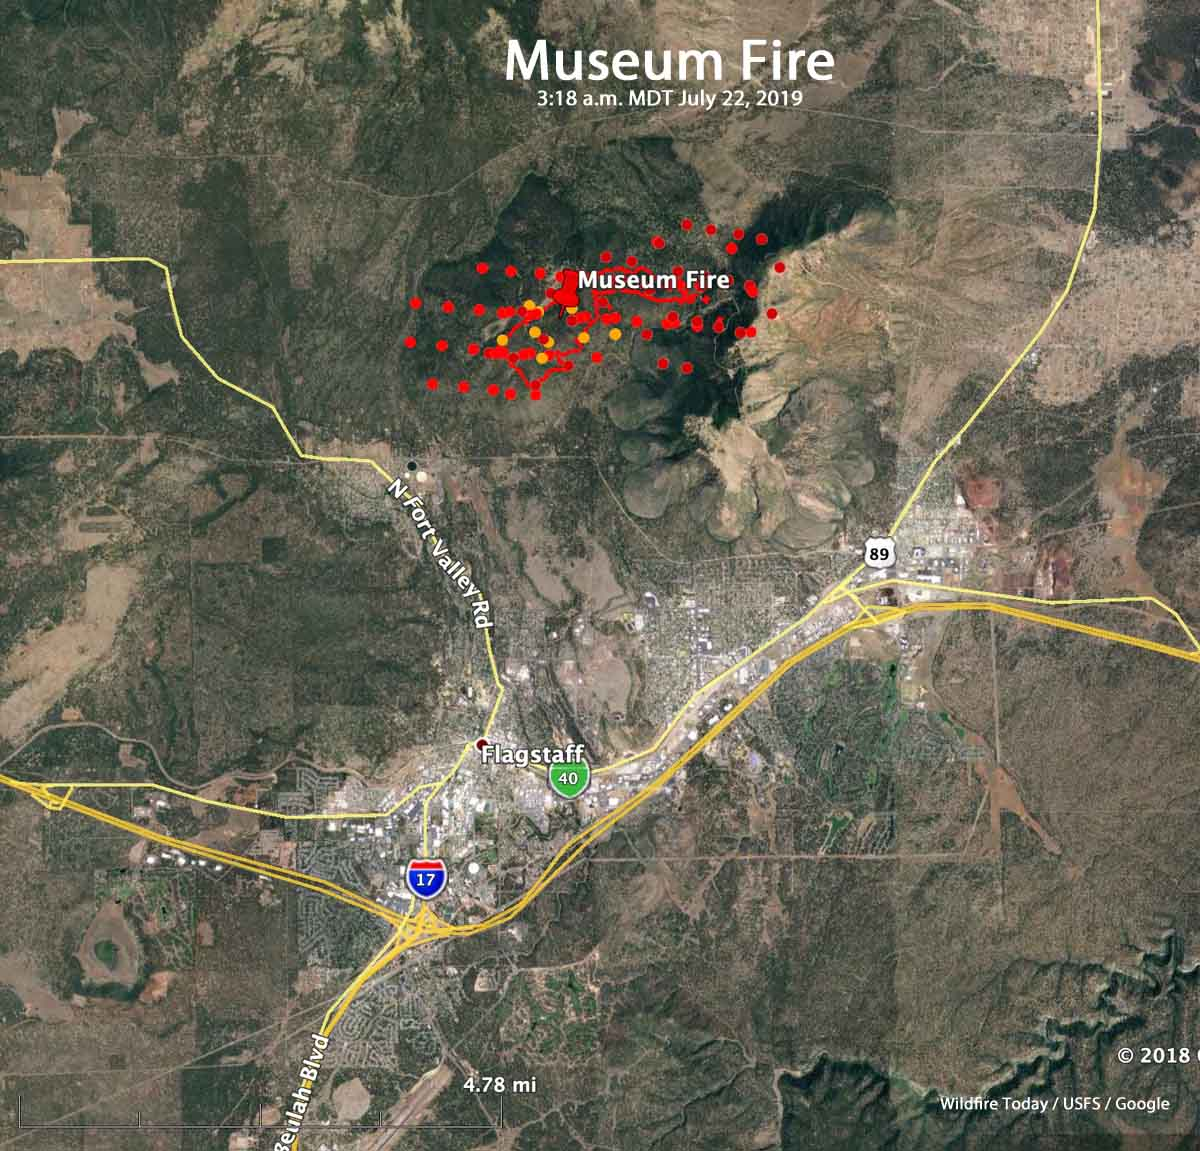 Museum Fire causes evacuations at Flagstaff - Wildfire Today on cocos san marcos fire map, caltrans fire map, google earth murder scene coordinates, live fire map, bing fire map, 1970 laguna fire map, google earth ufo, south lake tahoe fire map, google maps australia, walmart fire map, western u.s. wildfires map, carlsbad ca fire map, powerhouse fire santa clarita map, google maps malaysia, google earth live, house on fire utah map, 2014 utah fire map,